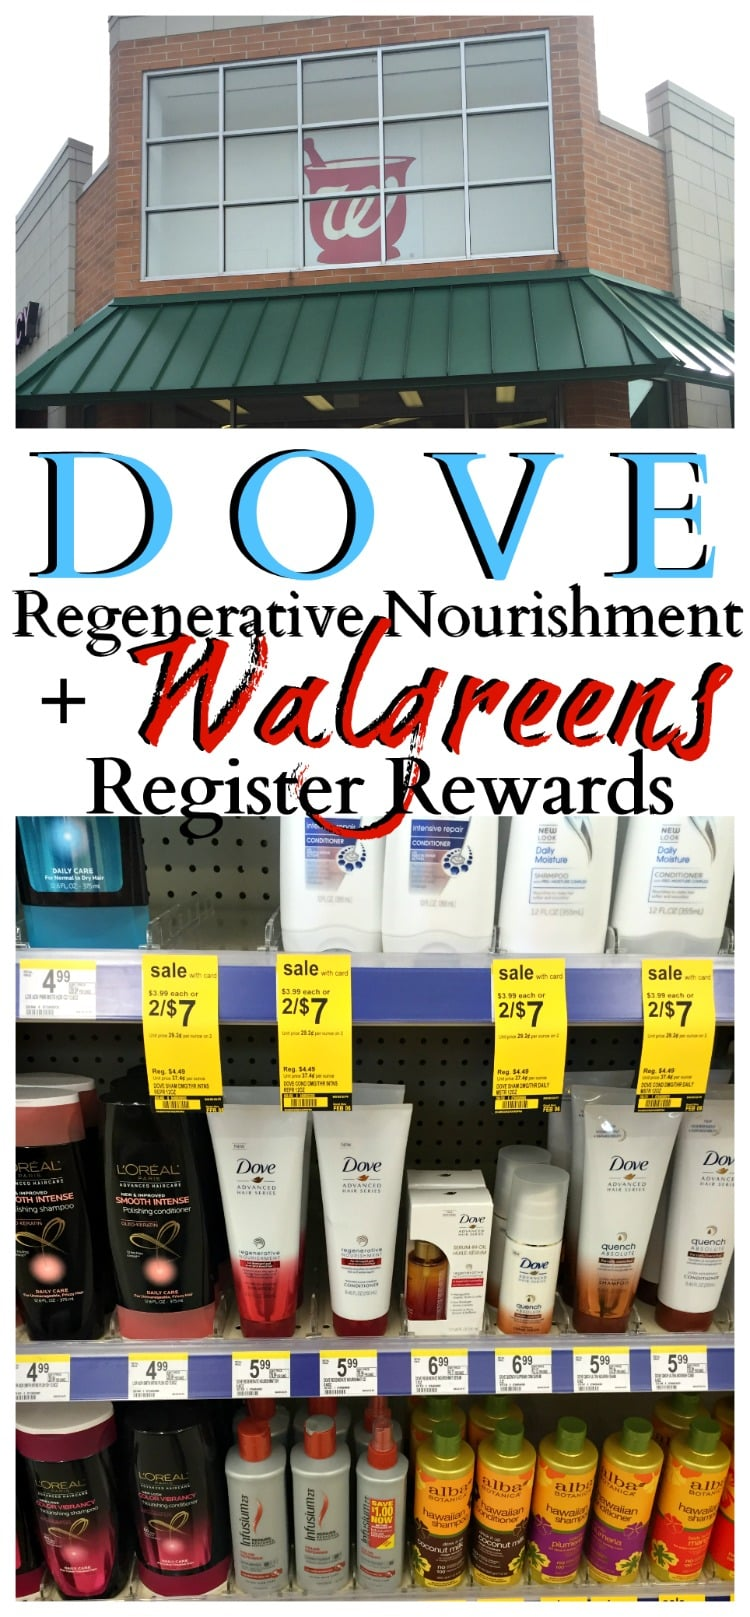 dove walgreens register rewards